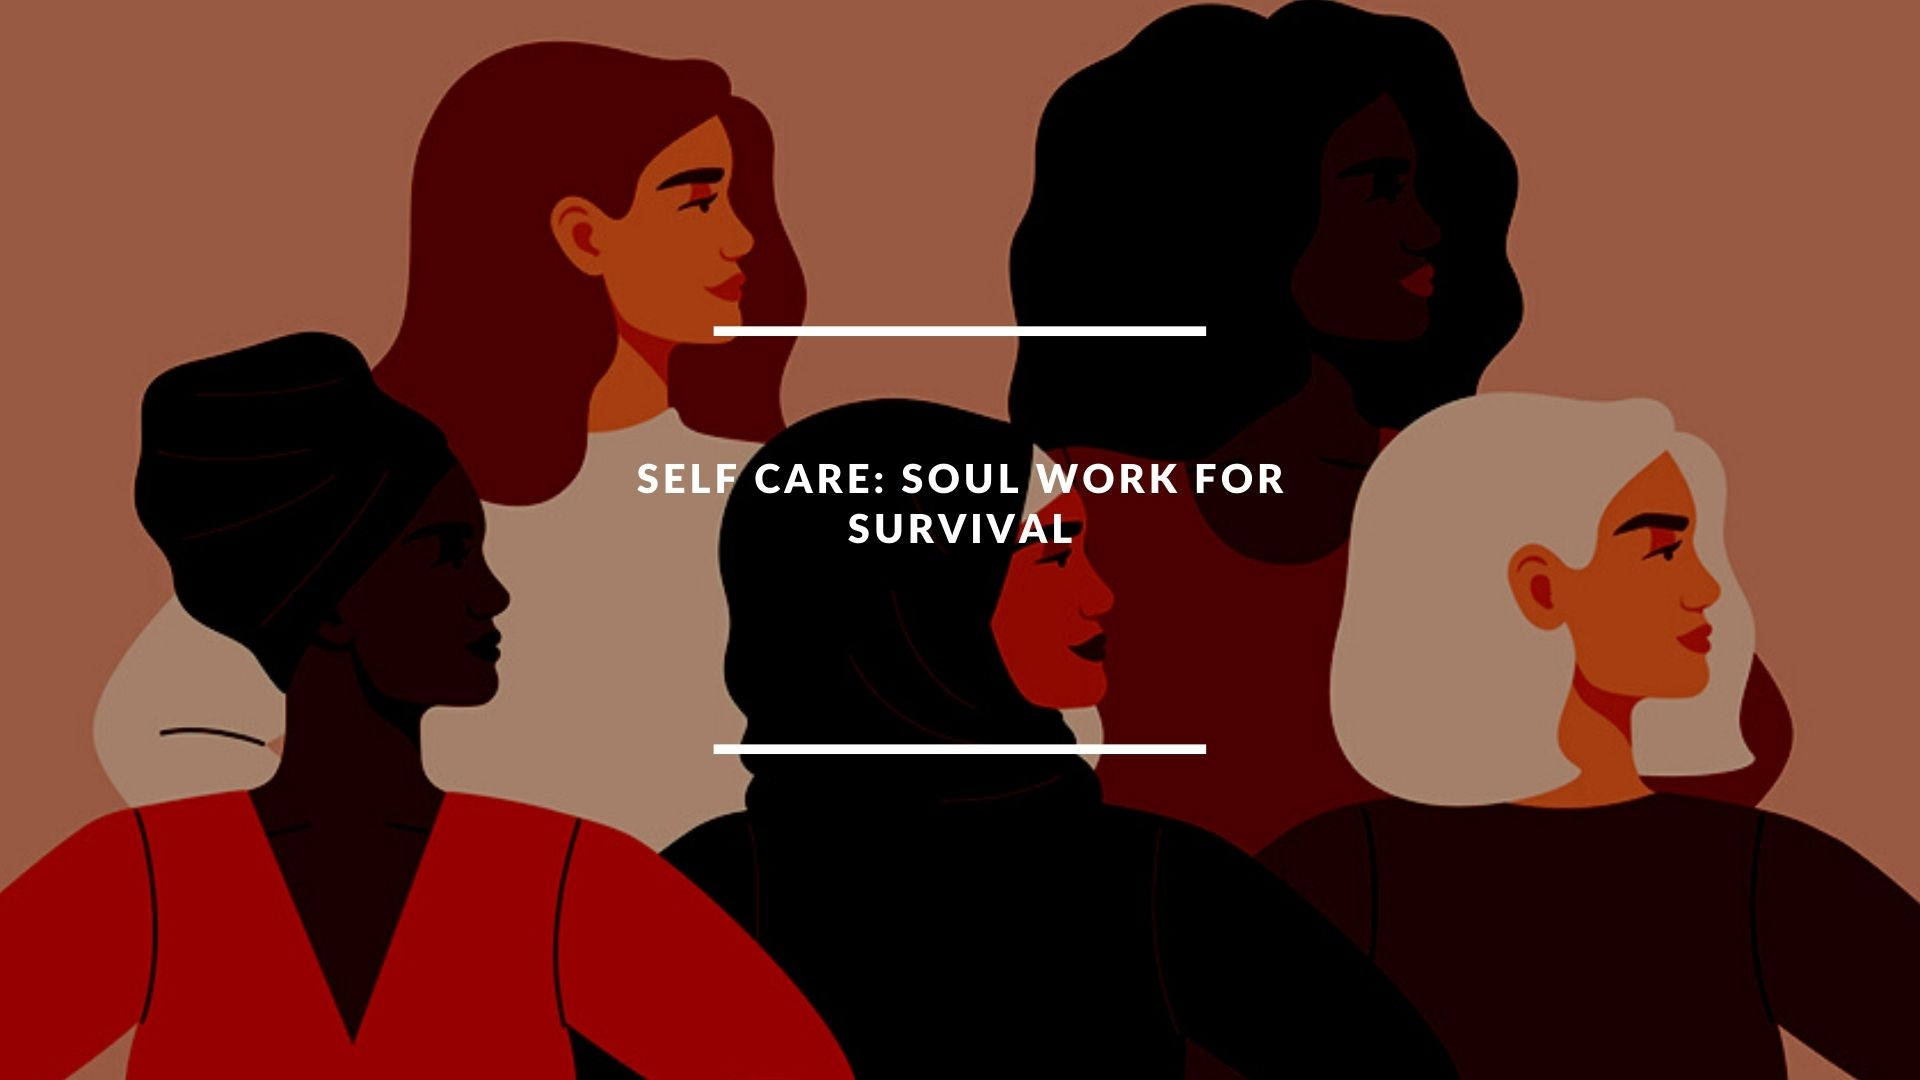 Self Care: Soul work for survival